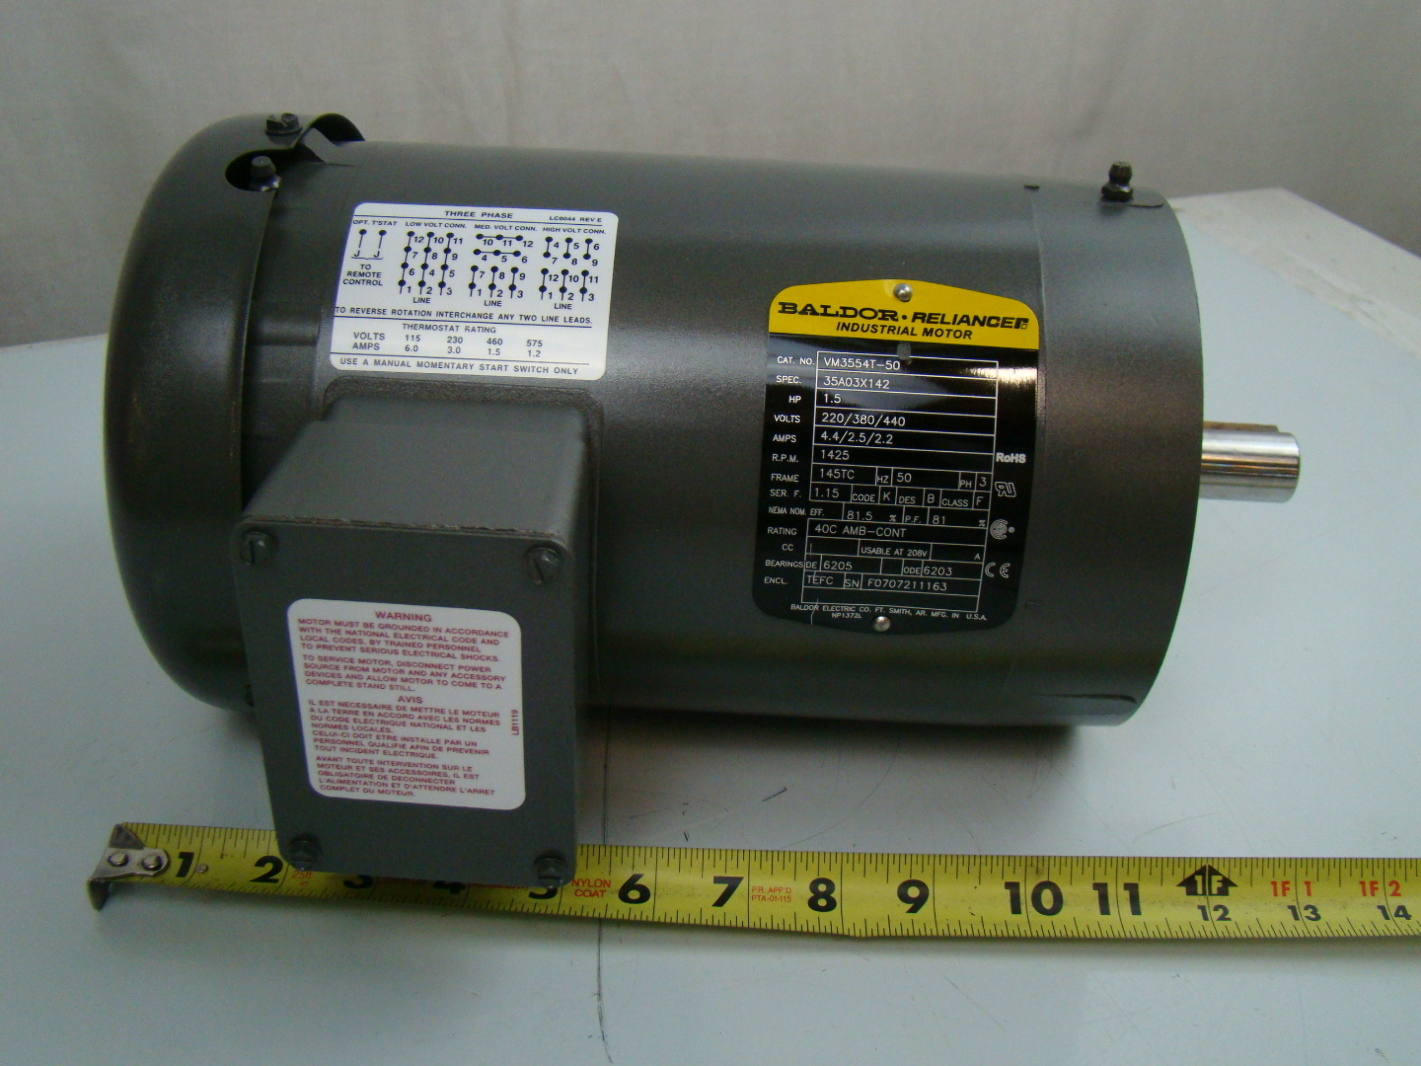 Baldor 1 5 hp 1425 rpm electric motor vm3554t 50 ebay for Baldor industrial motor parts